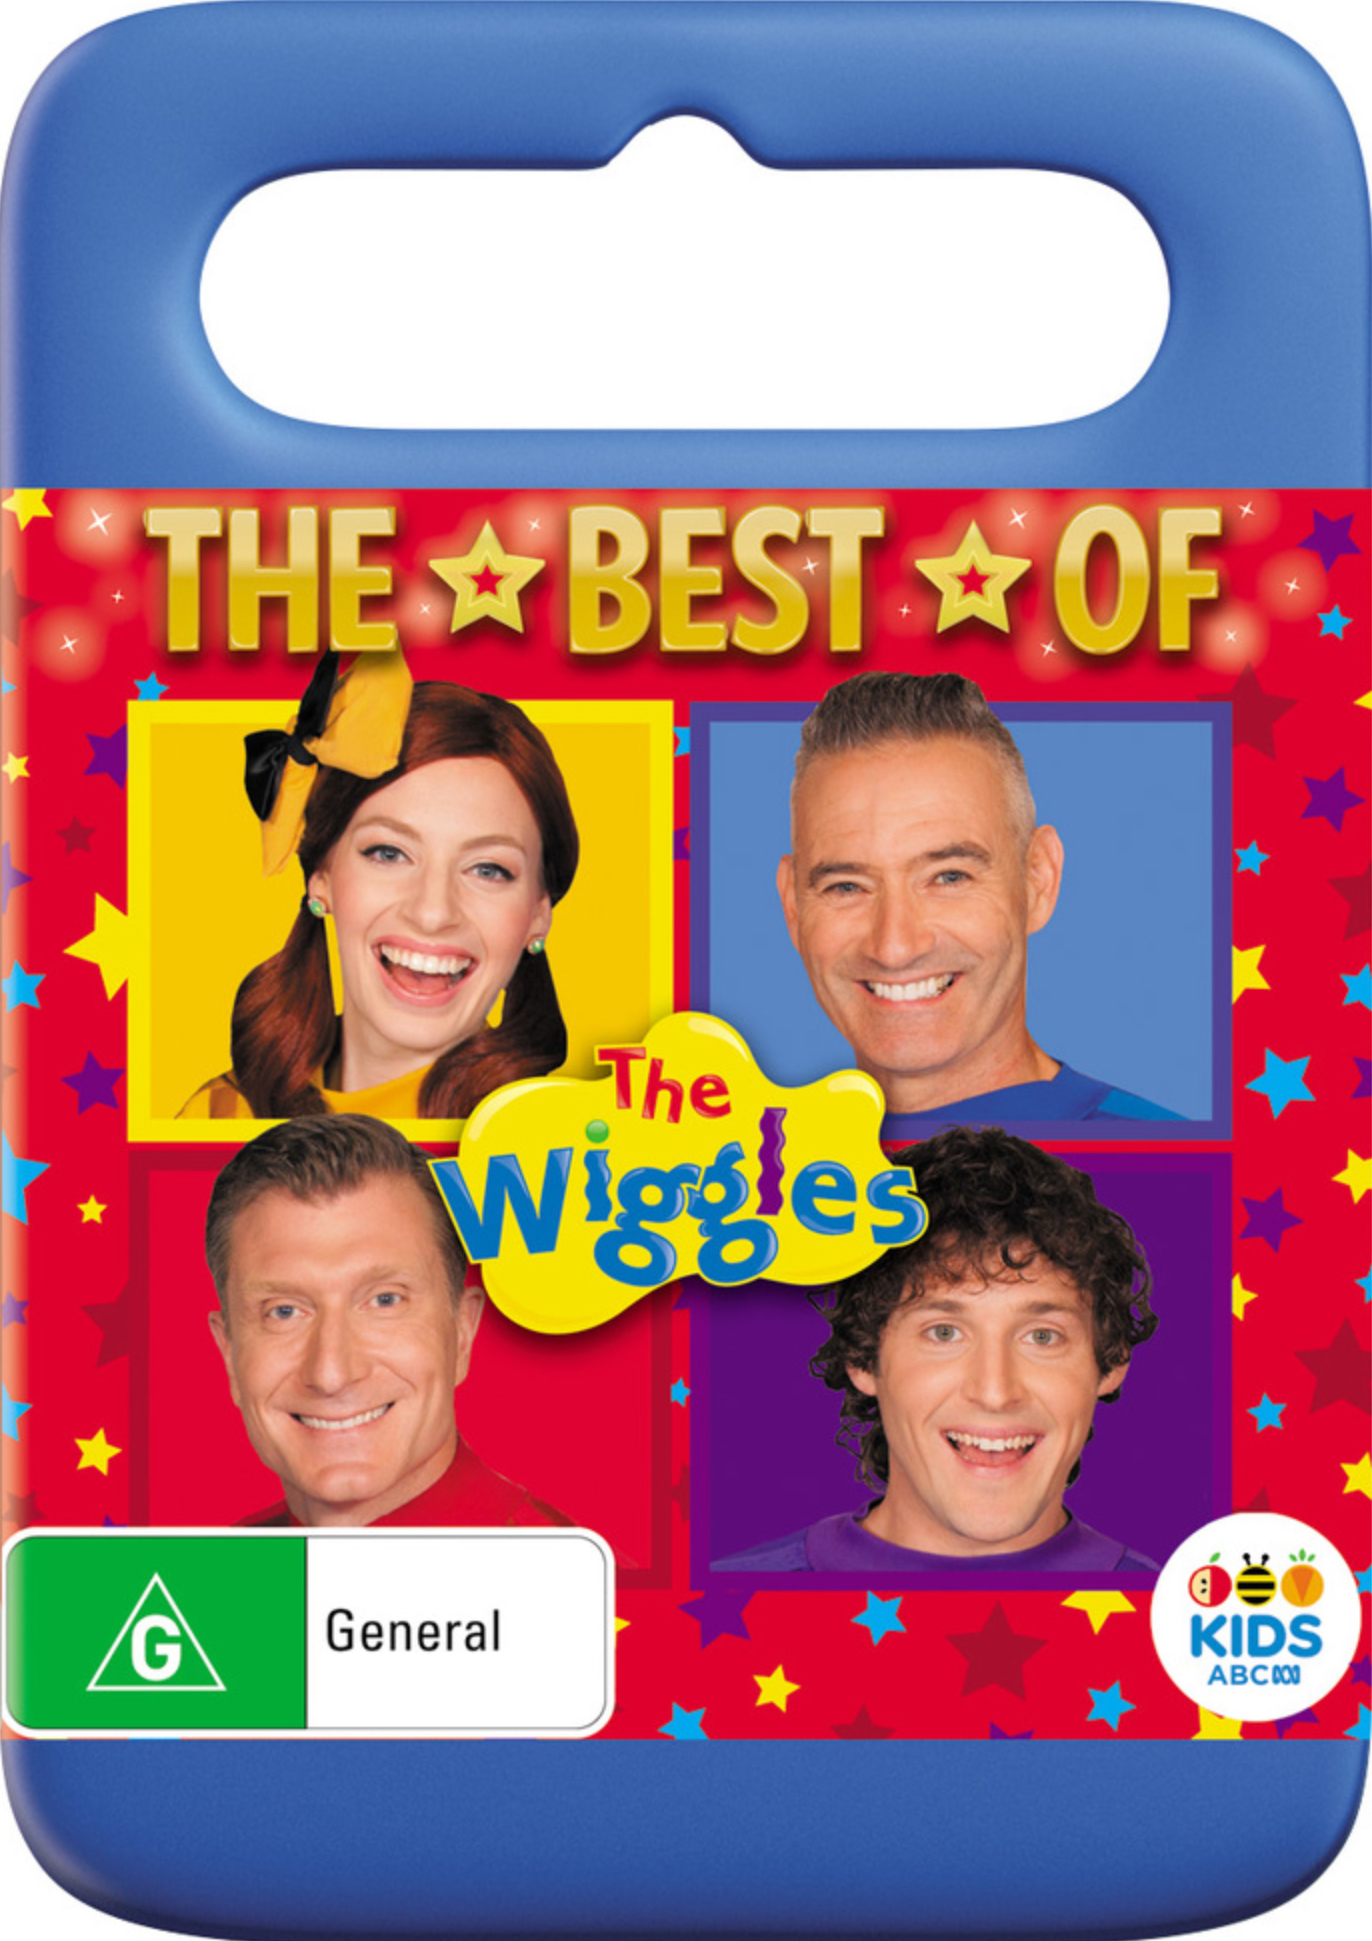 The Best of The Wiggles (2018 video)